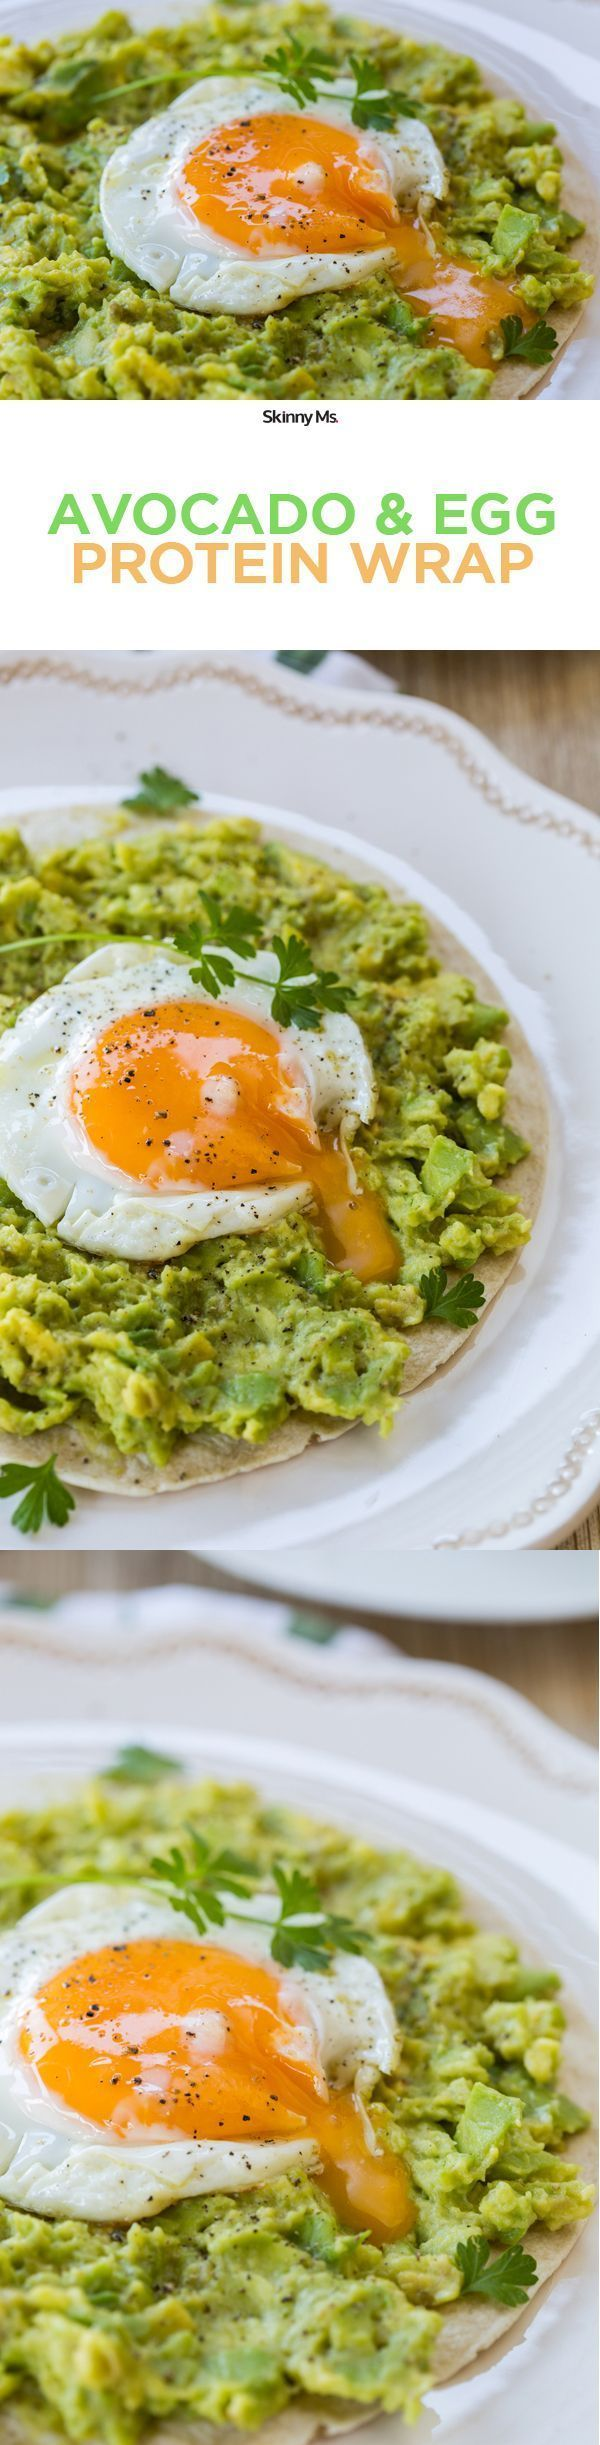 Weve packed in two superfoods, avocados and eggs, that offer tons of health benefits in this Avocado And Egg Protein Wrap! #cleaneating #healthyfood